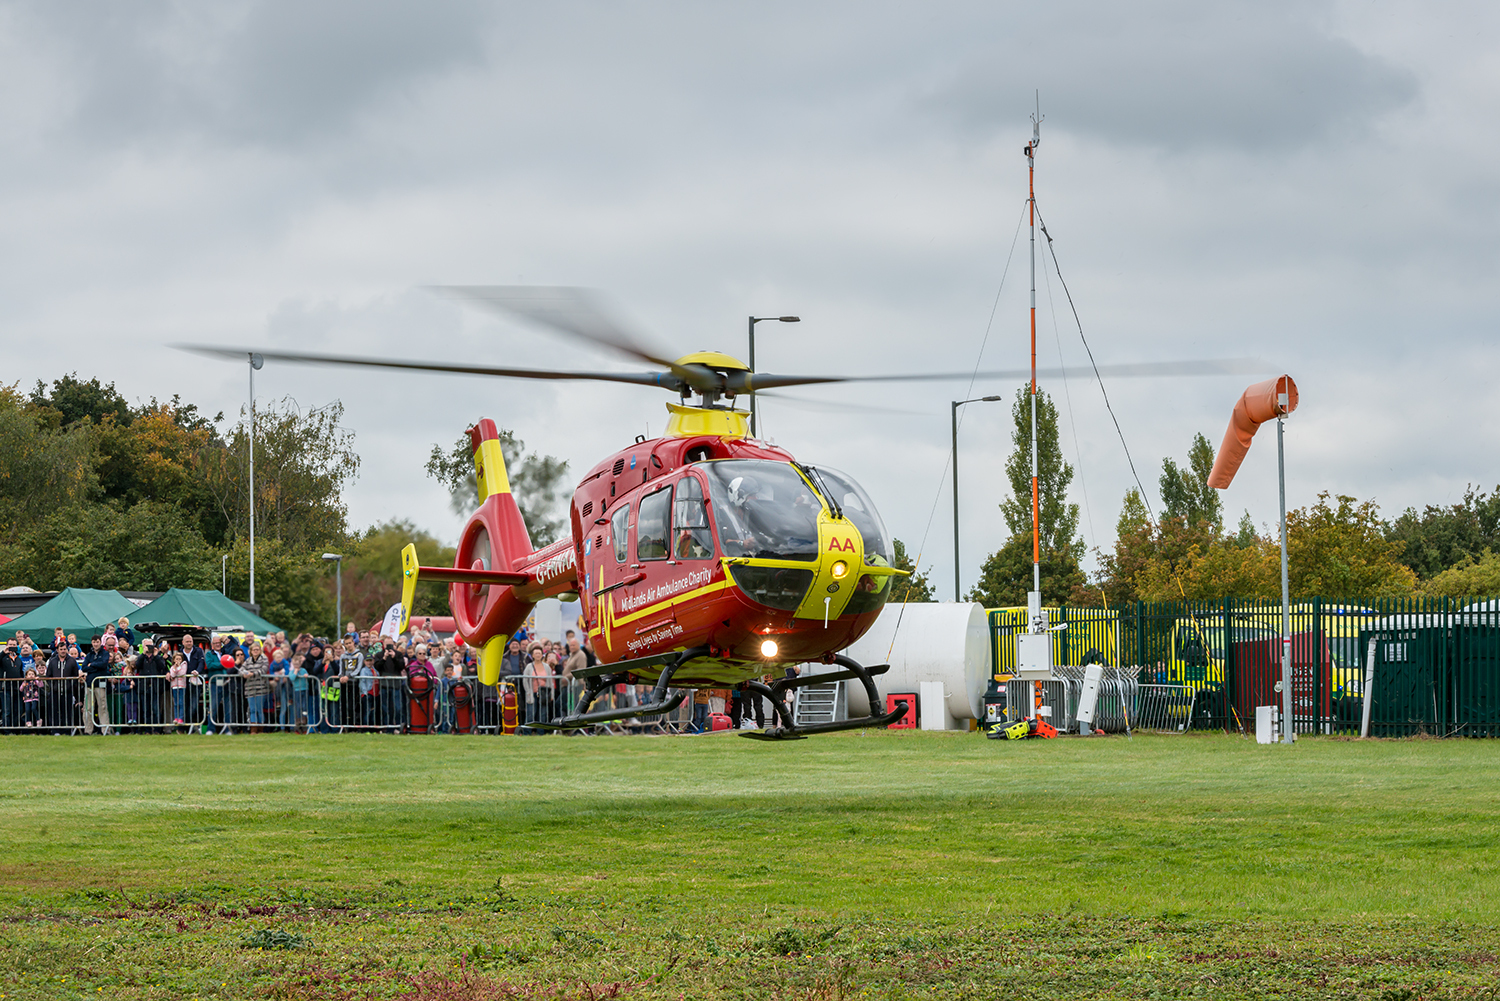 HELICOPTER: An air ambulance at Strensham